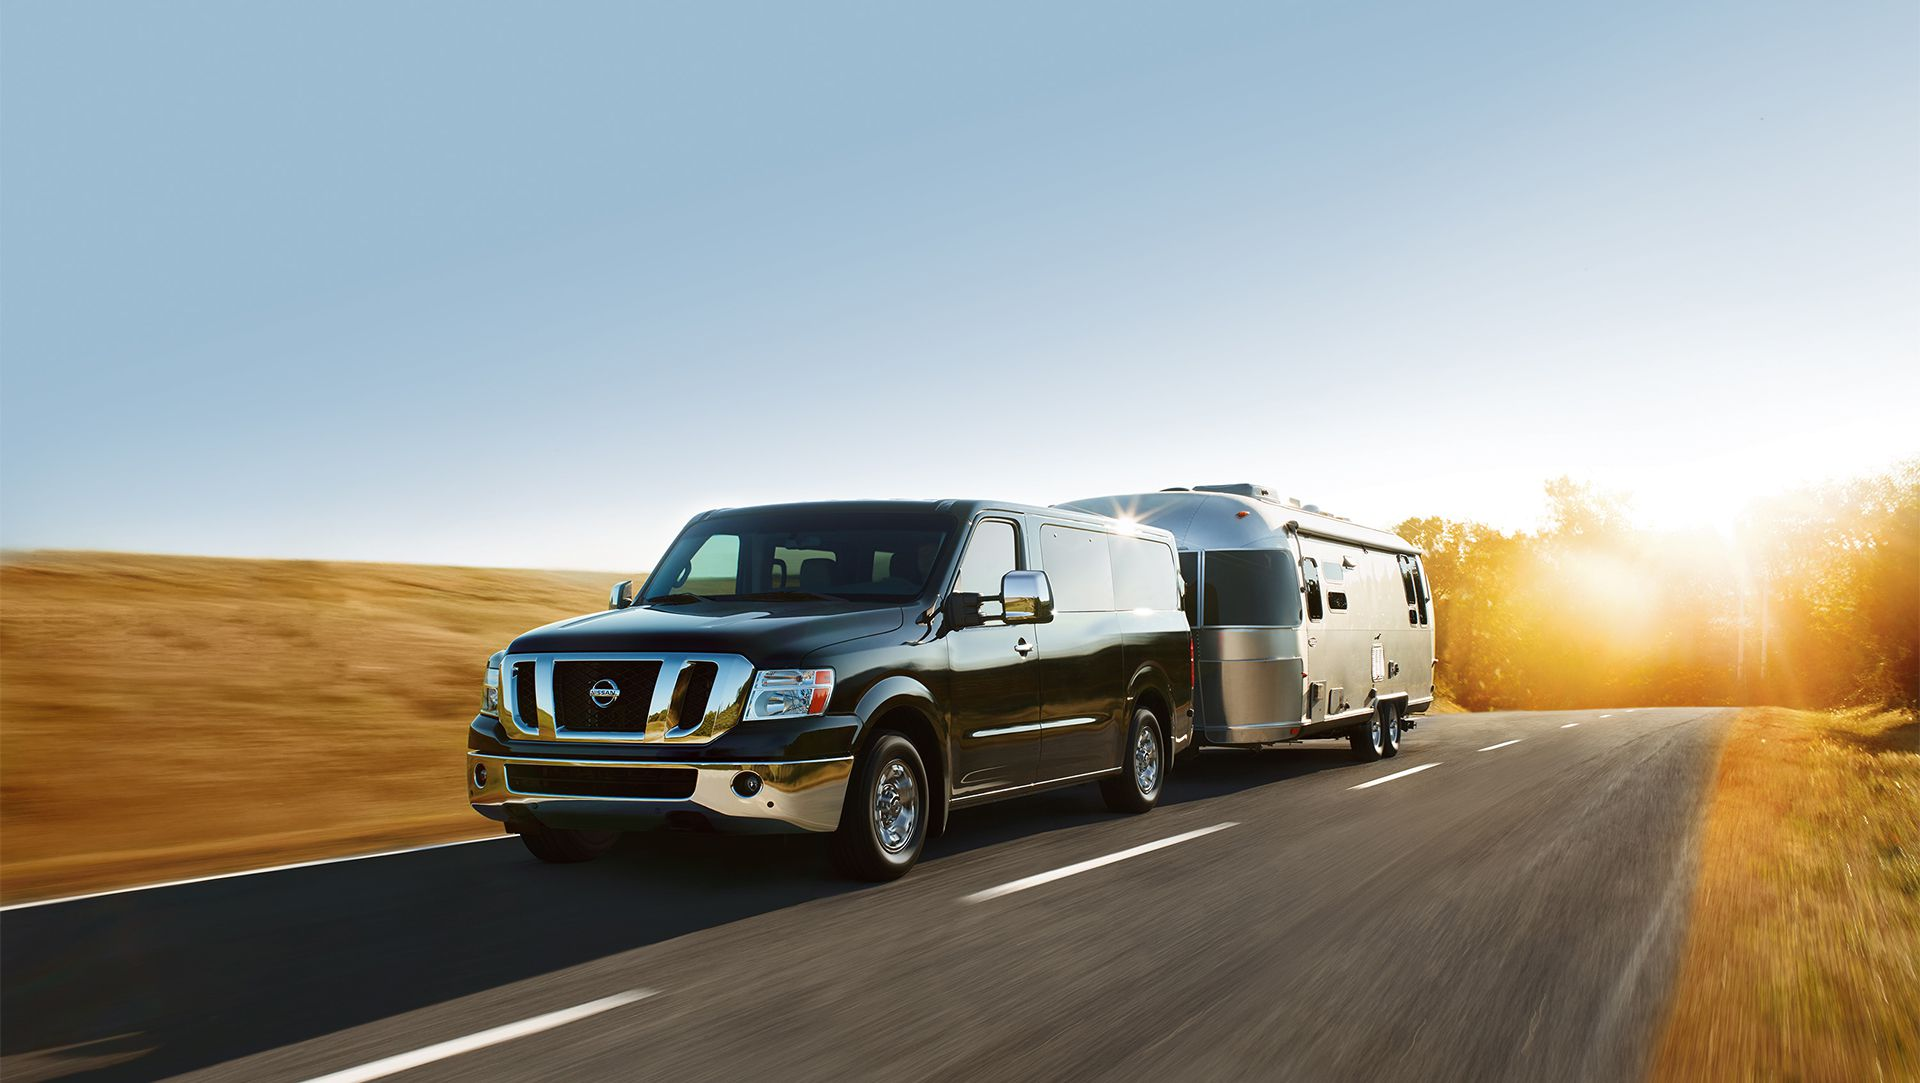 front new view nv reviews cars used sv nissan motor research van photos passenger models